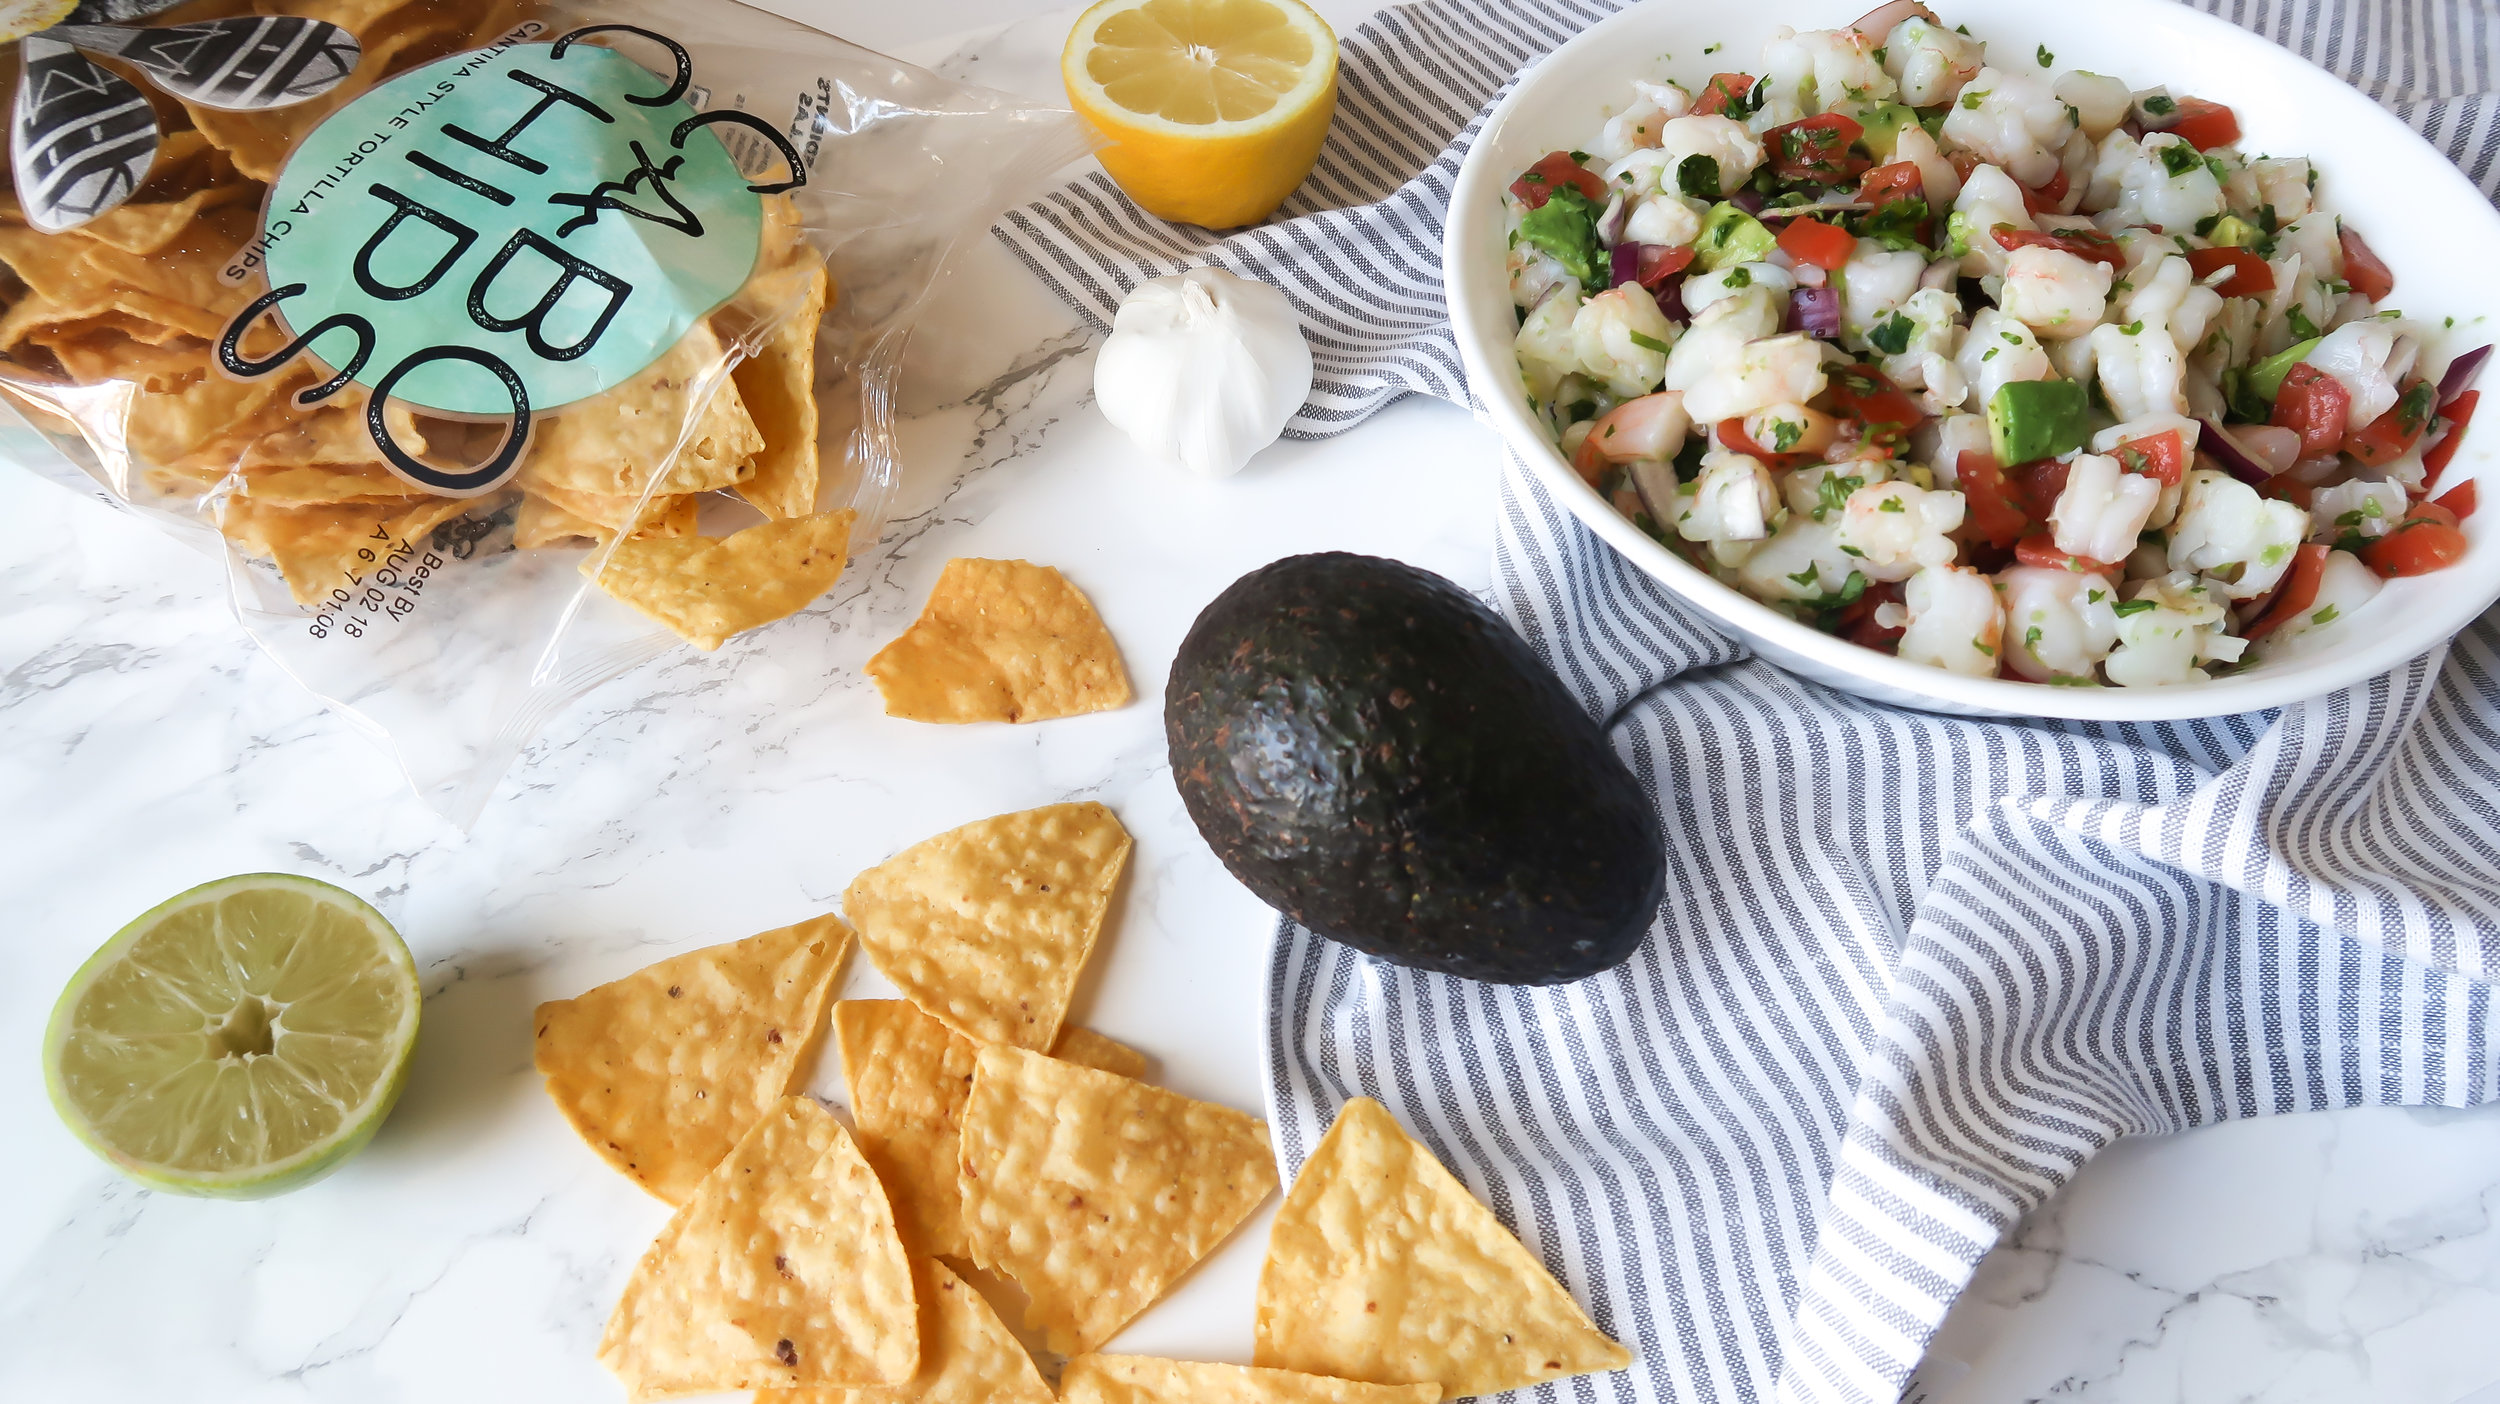 Shrimp Ceviche - Ingredients:- 1 lb. medium shrimp (thawed or fresh), peeled & deveined- squeezed lime juice (1-2 limes)- squeezed lemon juice (1-2 lemons)- 1/3 red onion, chopped- 3/4 cup cilantro, chopped- 1 avocado, chopped- pepper